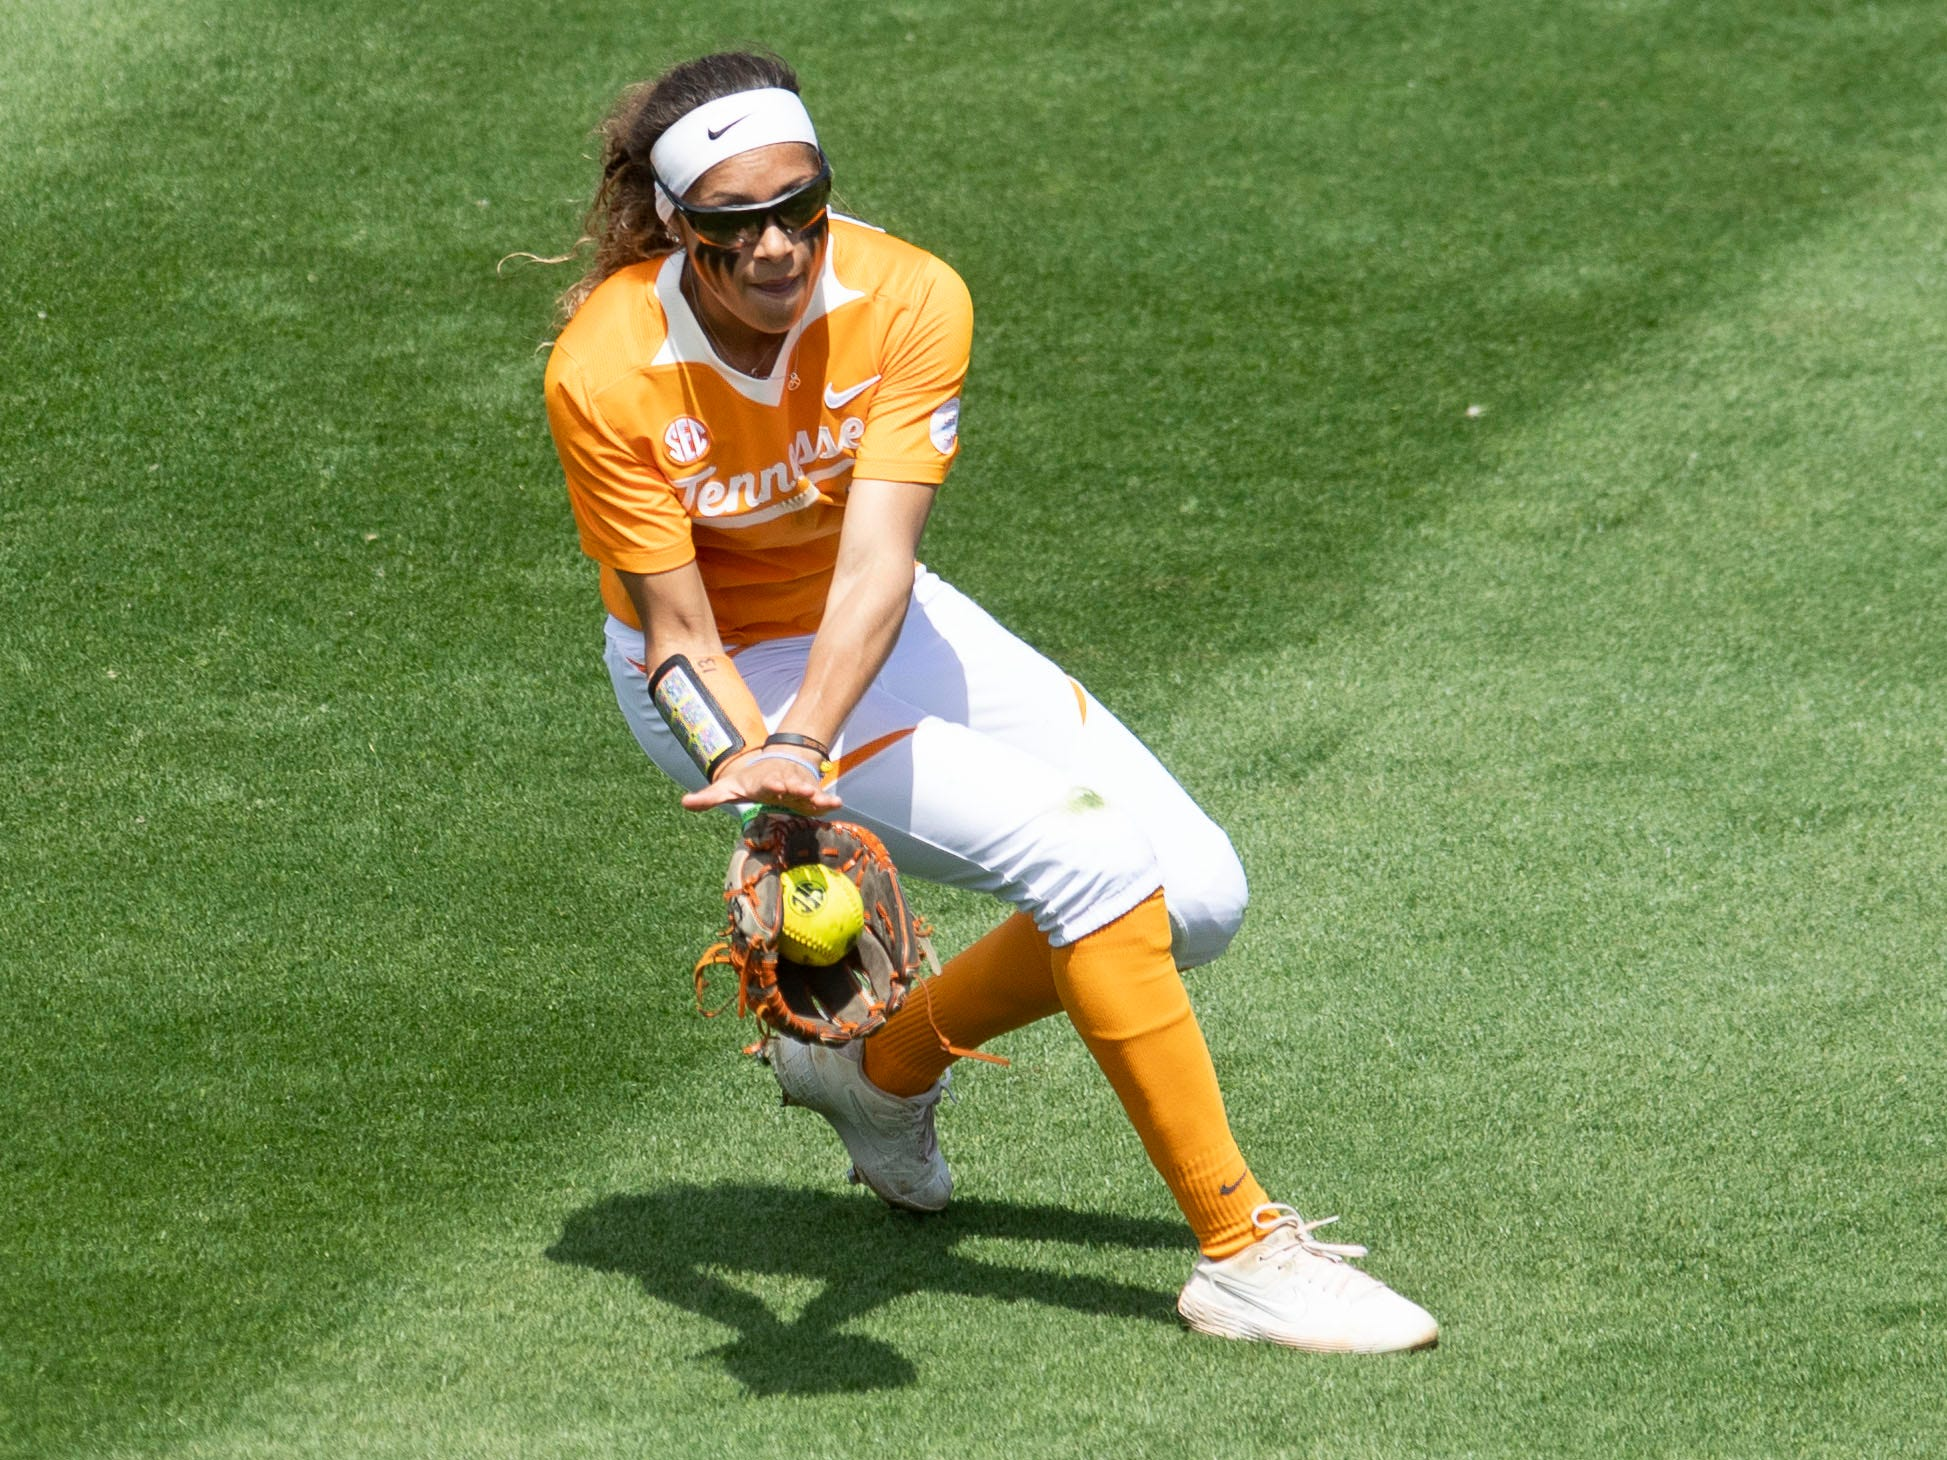 Tennessee's Amanda Ayala (13) stops a ball in outfield in the game against Mississippi State at Sherri Parker Lee Stadium on Sunday, April 14, 2019.